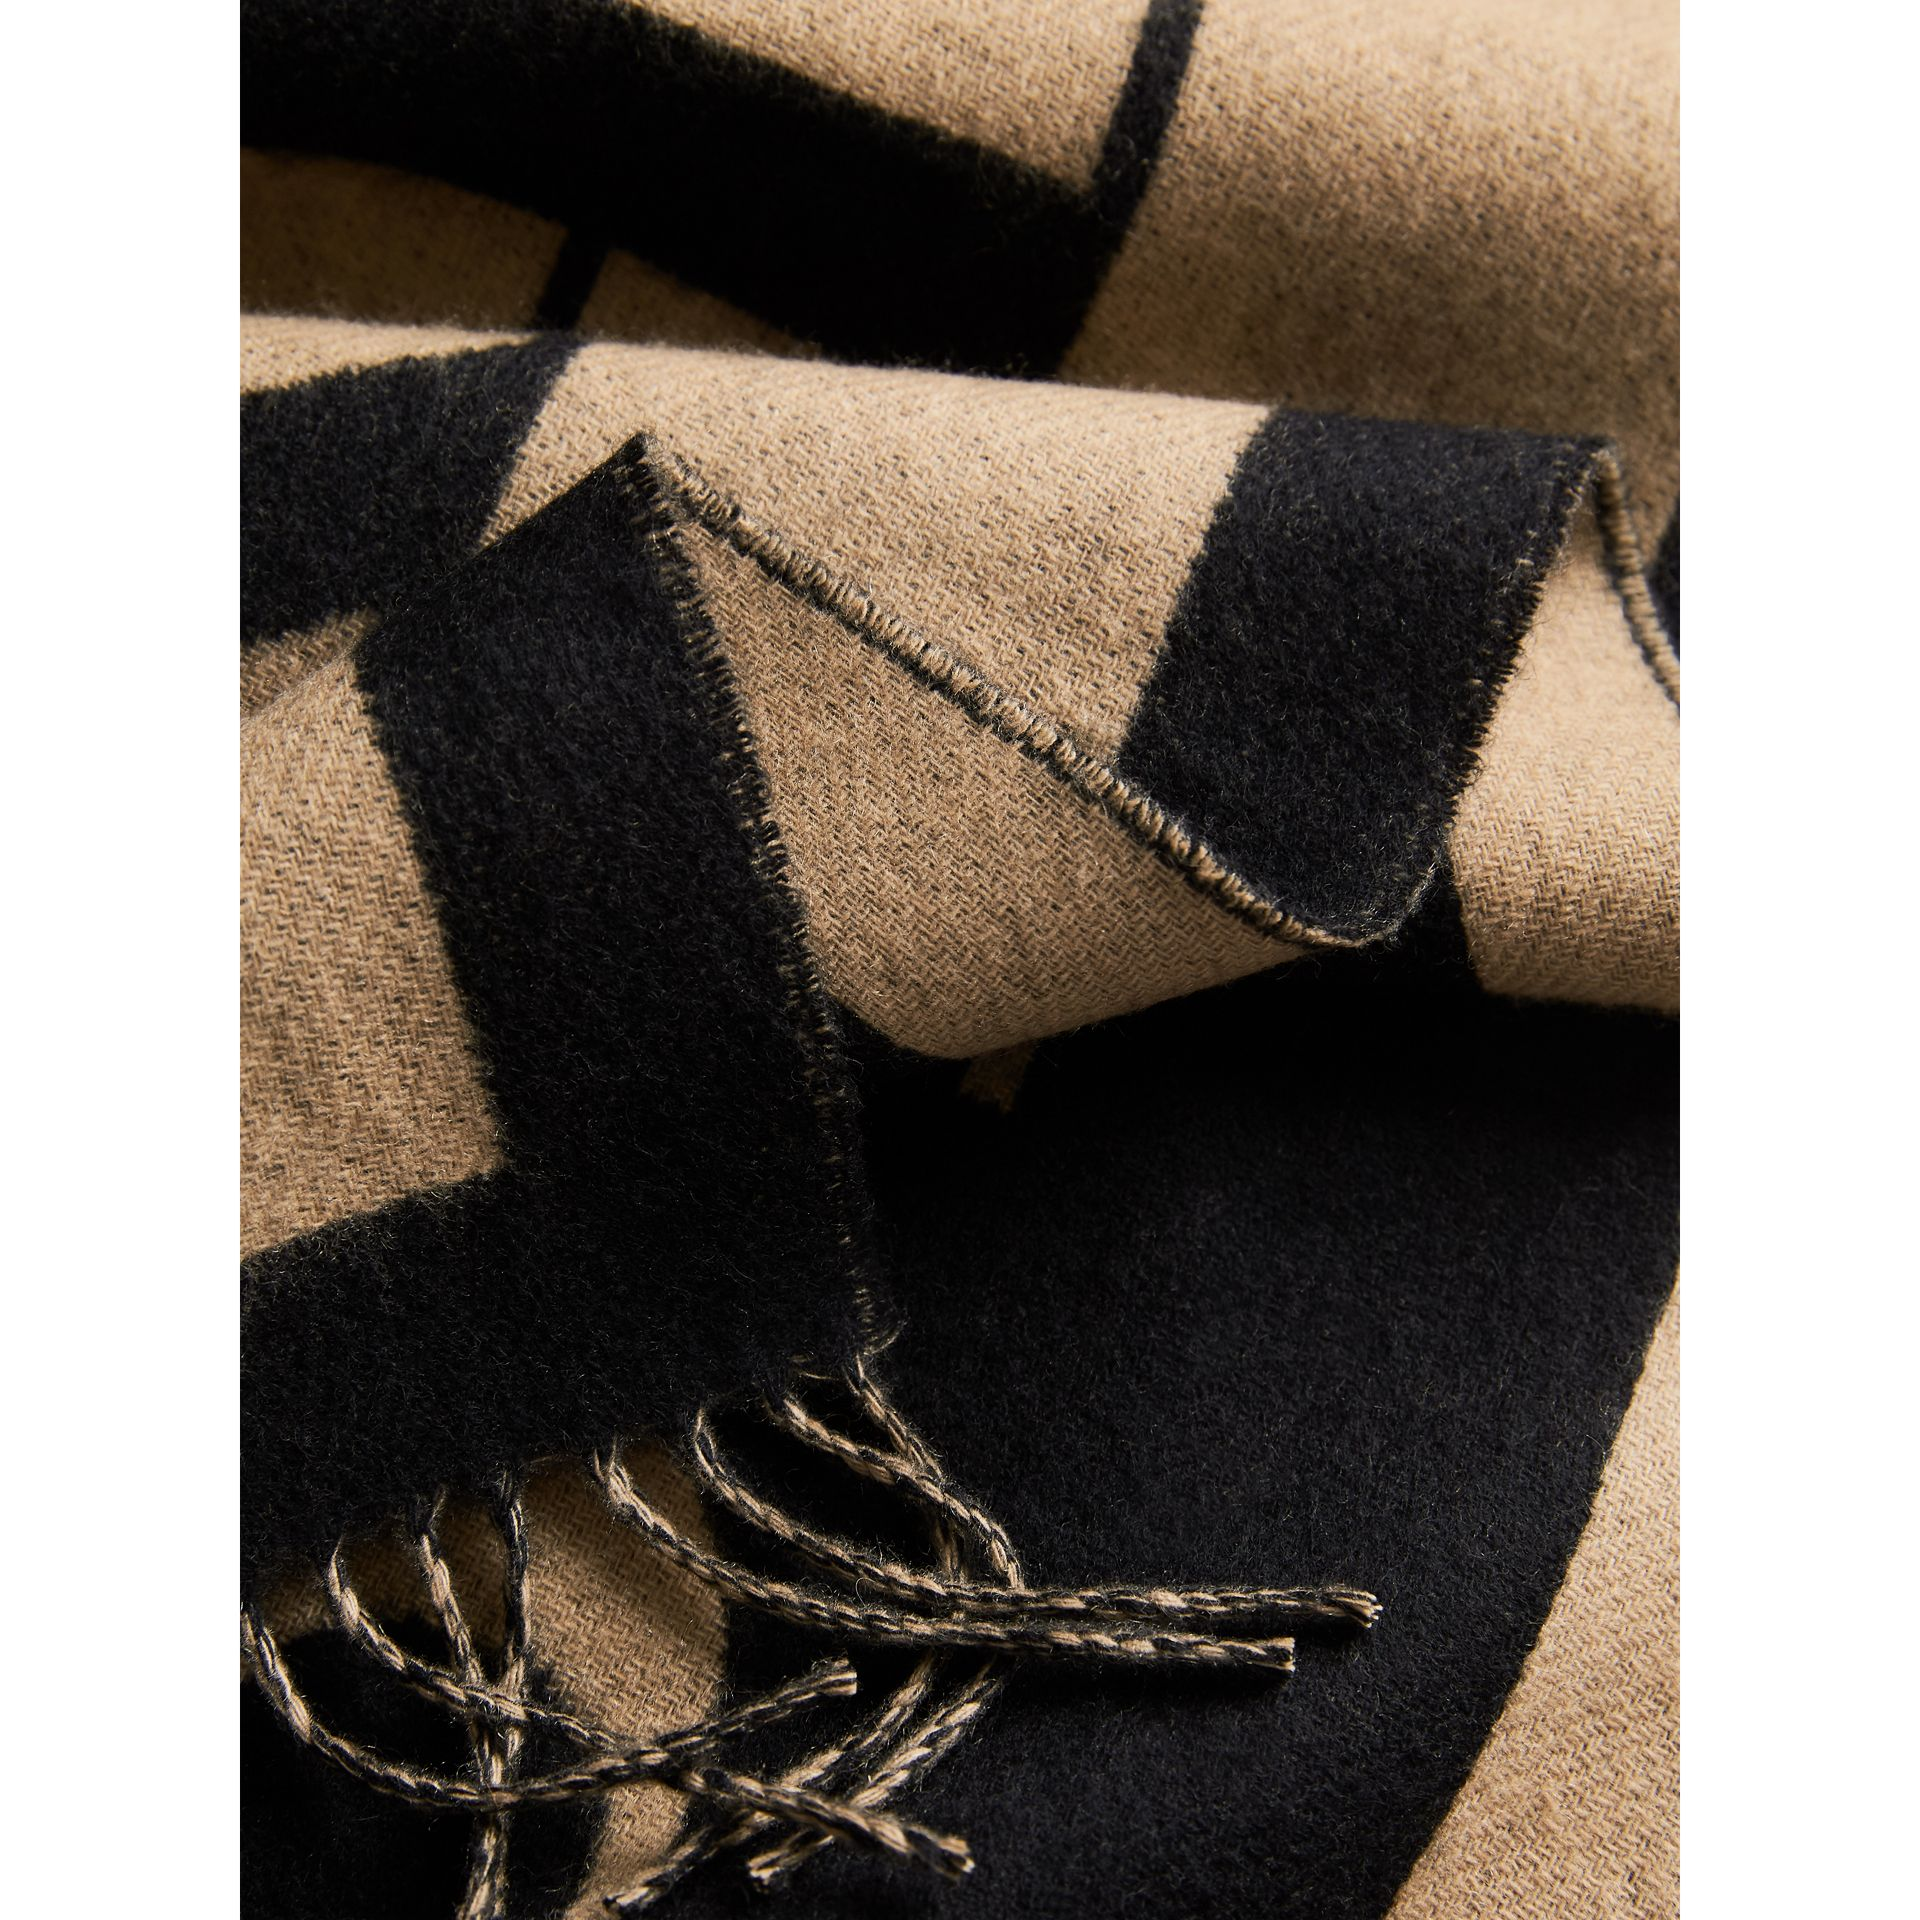 Emblem Print Cashmere Scarf in Camel | Burberry United Kingdom - gallery image 1